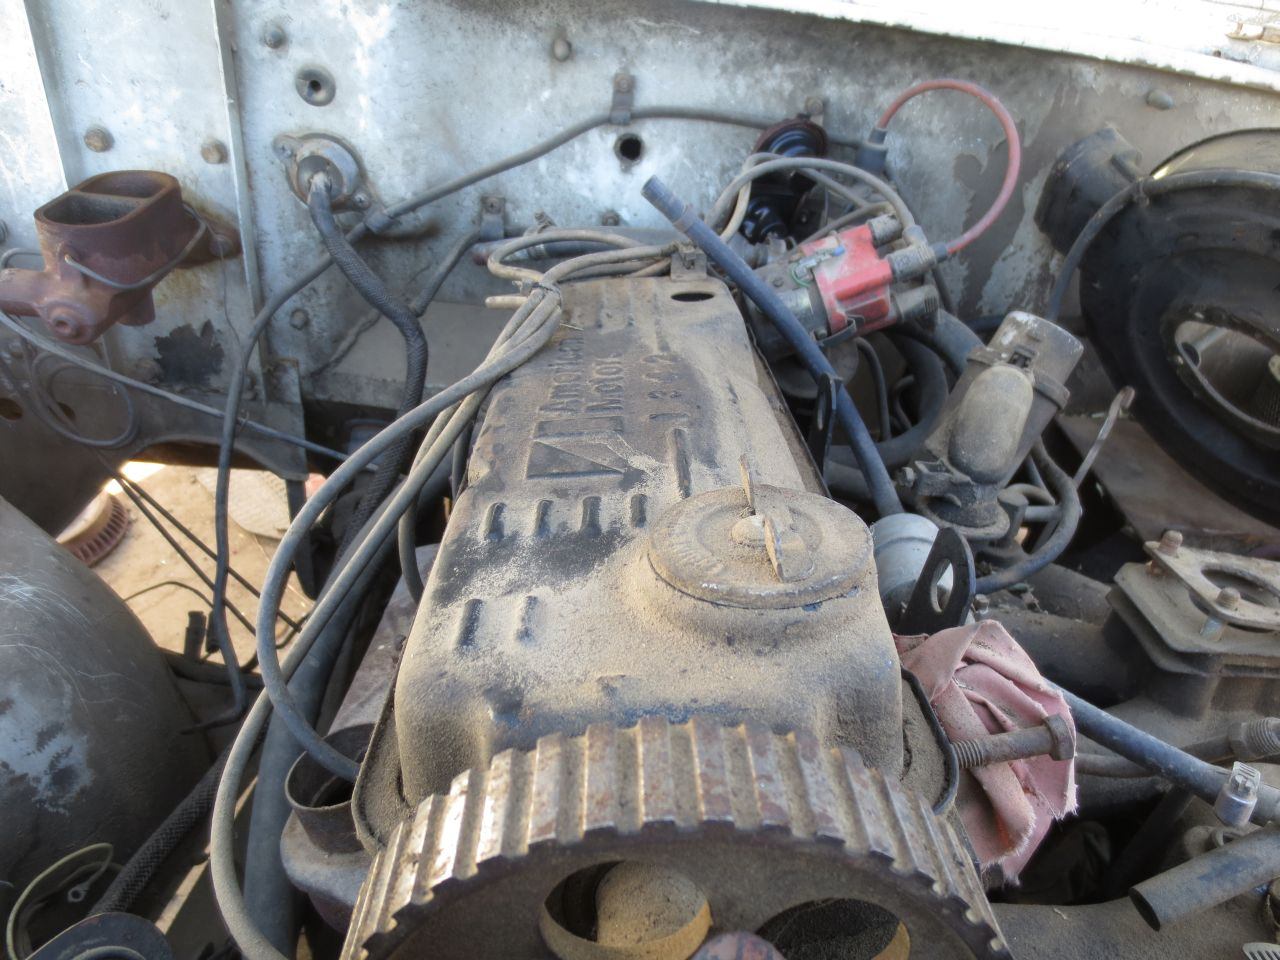 Junkyard Find 1979 Am General Dj 5g Jeep With Factory Audi Power Iron Duke Engine Diagram This Dash Is Probably What Designer Hell Looks Like